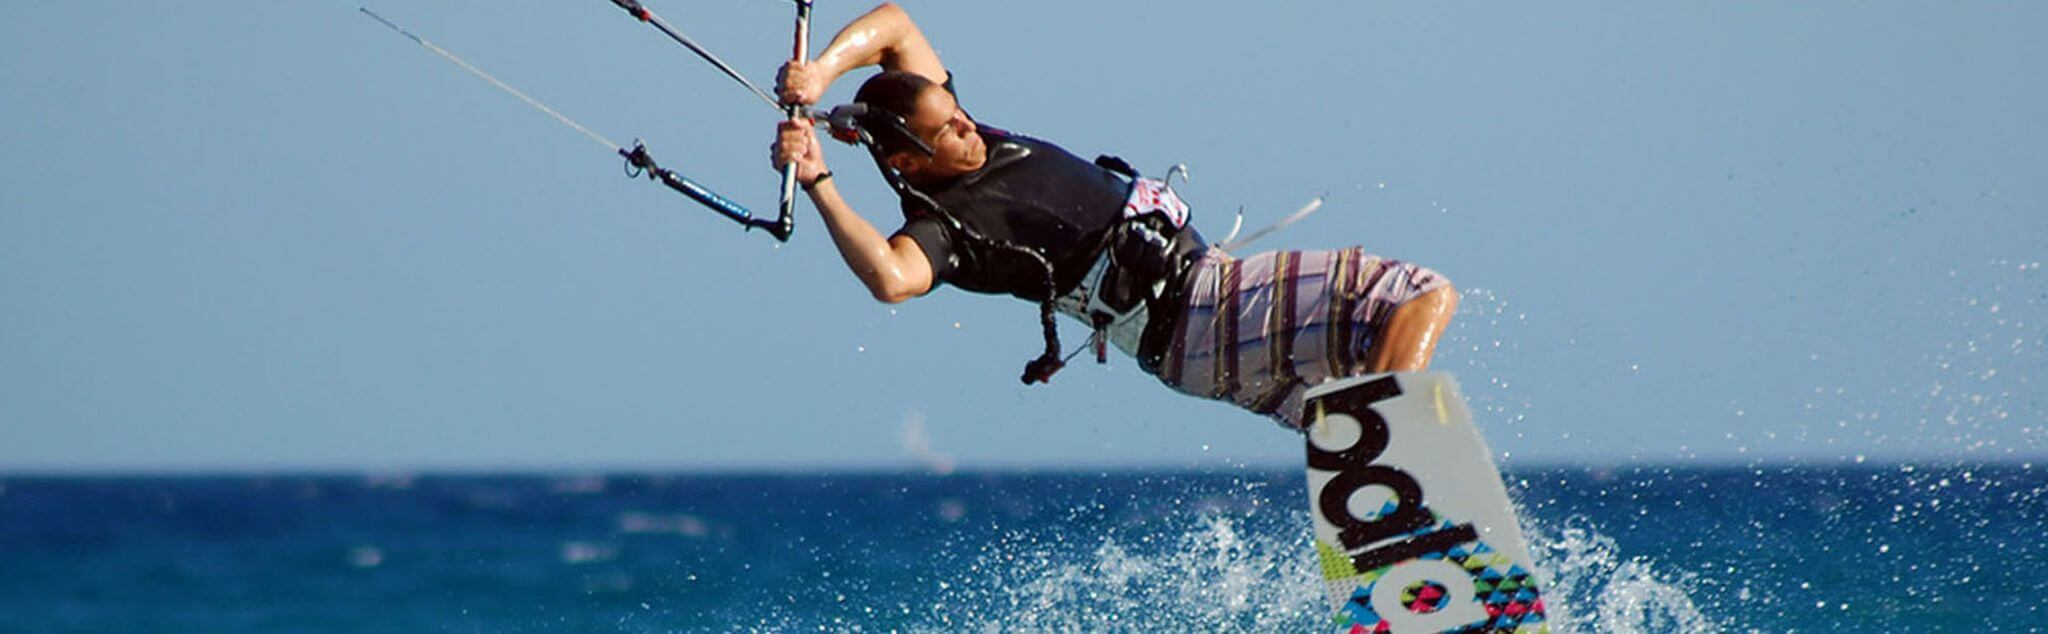 Kitesurfing in País Vasco